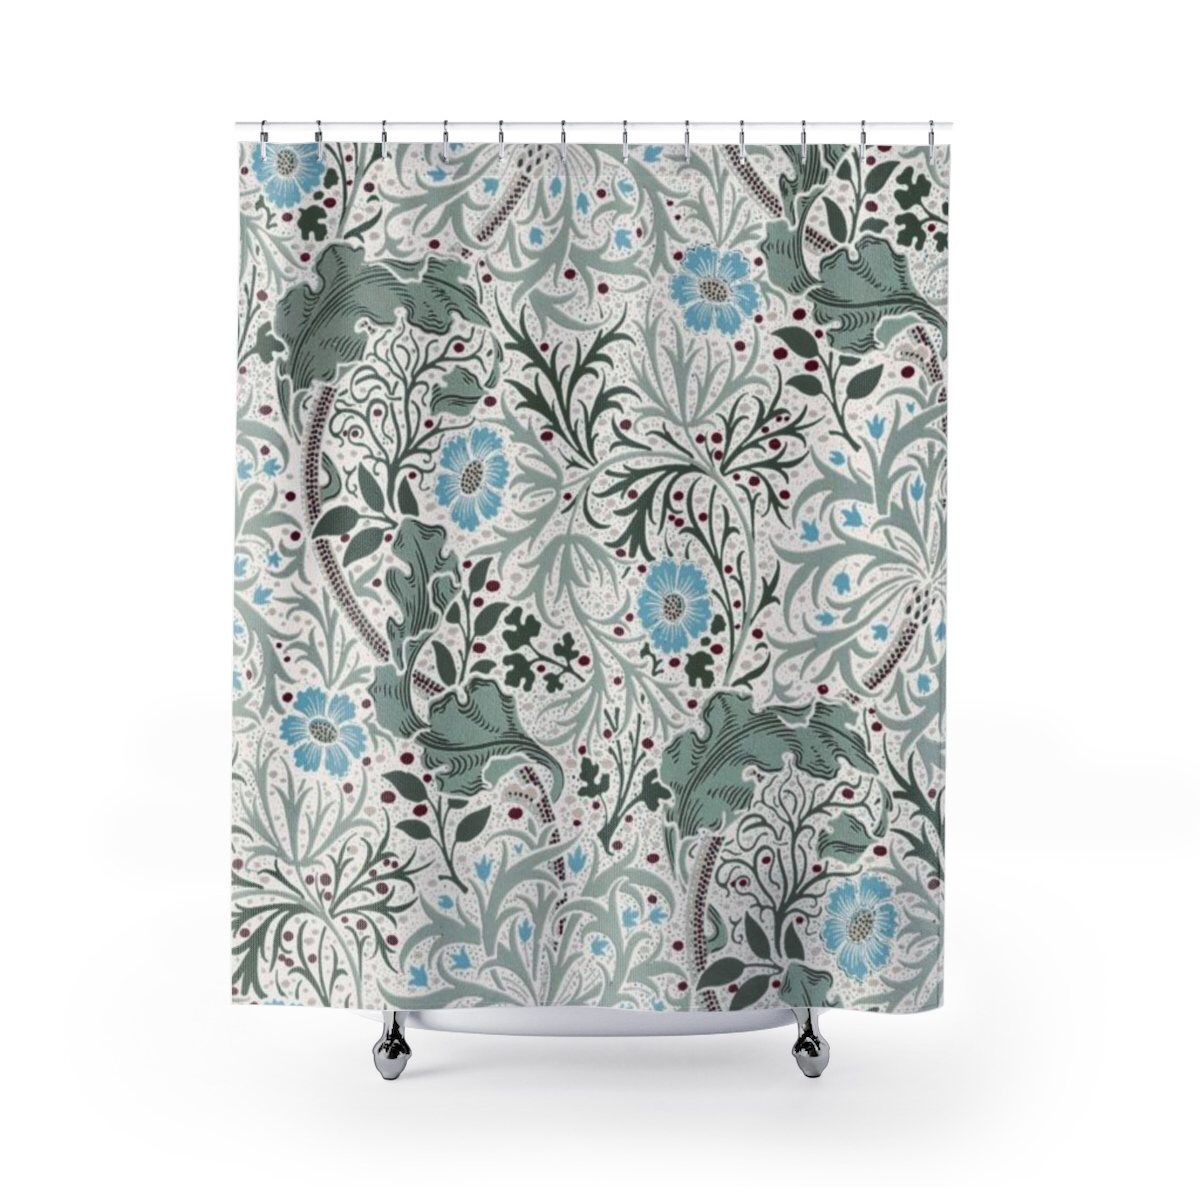 William Morris Shower Curtain Blue Green Seaweed Print English